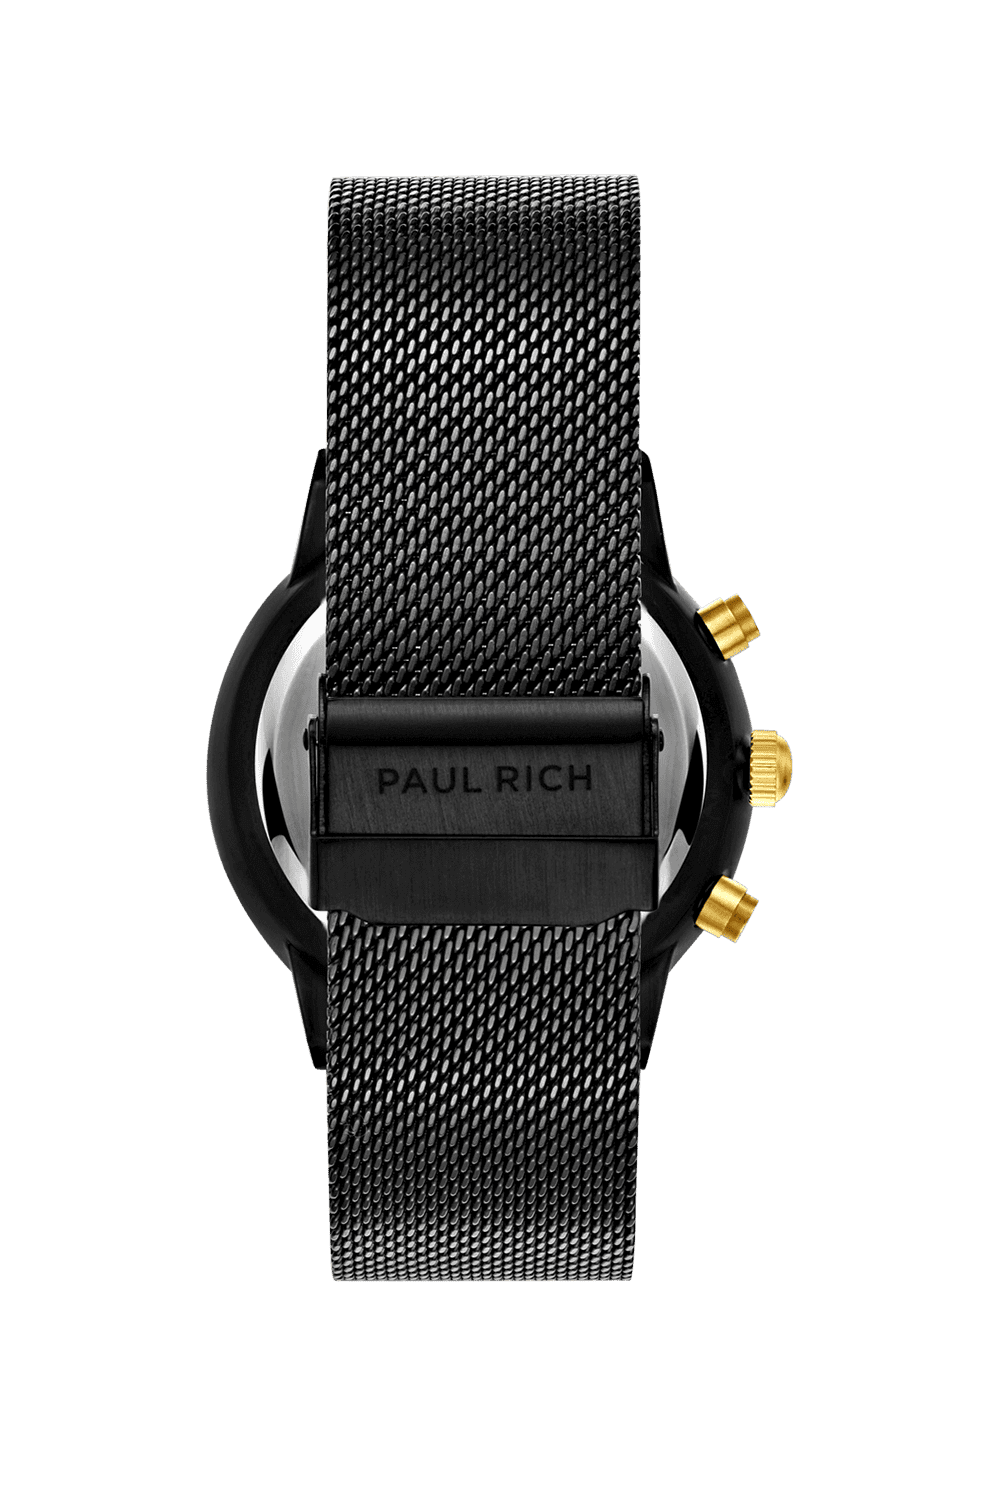 Paul Rich Cosmic watch